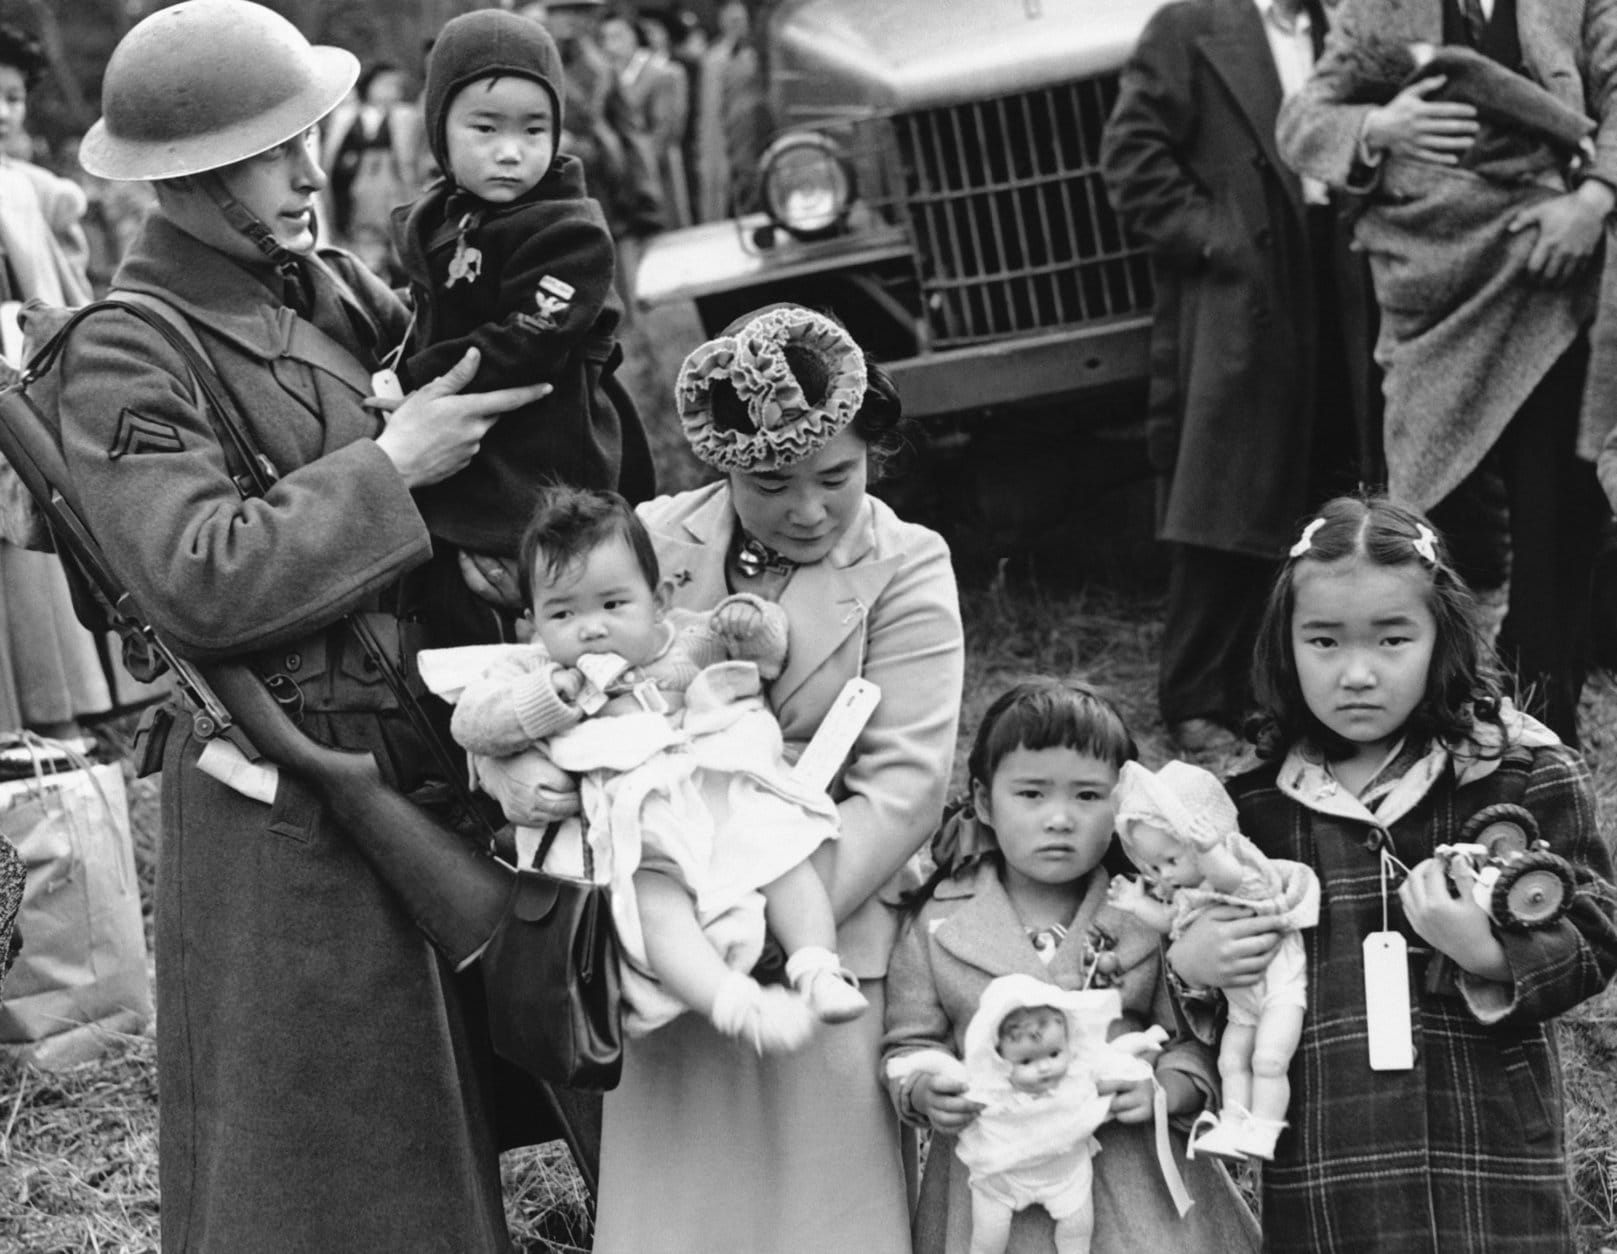 "<p>By June of that year, the 120,000 Japanese-Americans were in the camps. About 70,000 of the detainees were American citizens, many of whom had never been to Japan. The War Relocation Authority report said, ""While the remainder are aliens, it should be remembered that nearly all of them have been in this country for 18 years or more."" Some were discharged from the U.S. Army and headed straight for incarceration.</p> <p>This didn't bother an editorialist from the Los Angeles Times: ""A Japanese American born of Japanese parents … notwithstanding his nominal brand of accidental citizenship, almost inevitably and with the rarest exceptions grows up to be a Japanese, and not an American.""</p> <p>In the early 2000s, a pair of papers revealed evidence that U.S. census data were used to target Japanese-Americans. After the first paper, in 2000, Kenneth Prewitt, then the director of the U.S. Census Bureau, issued a public apology. (The Census Bureau told <a href=""https://www.washingtonpost.com/news/retropolis/wp/2018/04/03/secret-use-of-census-info-helped-send-japanese-americans-to-internment-camps-in-wwii/"" target=""_blank"" rel=""noopener"">The Washington Post</a> last year that laws have been changed since then to protect respondees' information.)</p>"